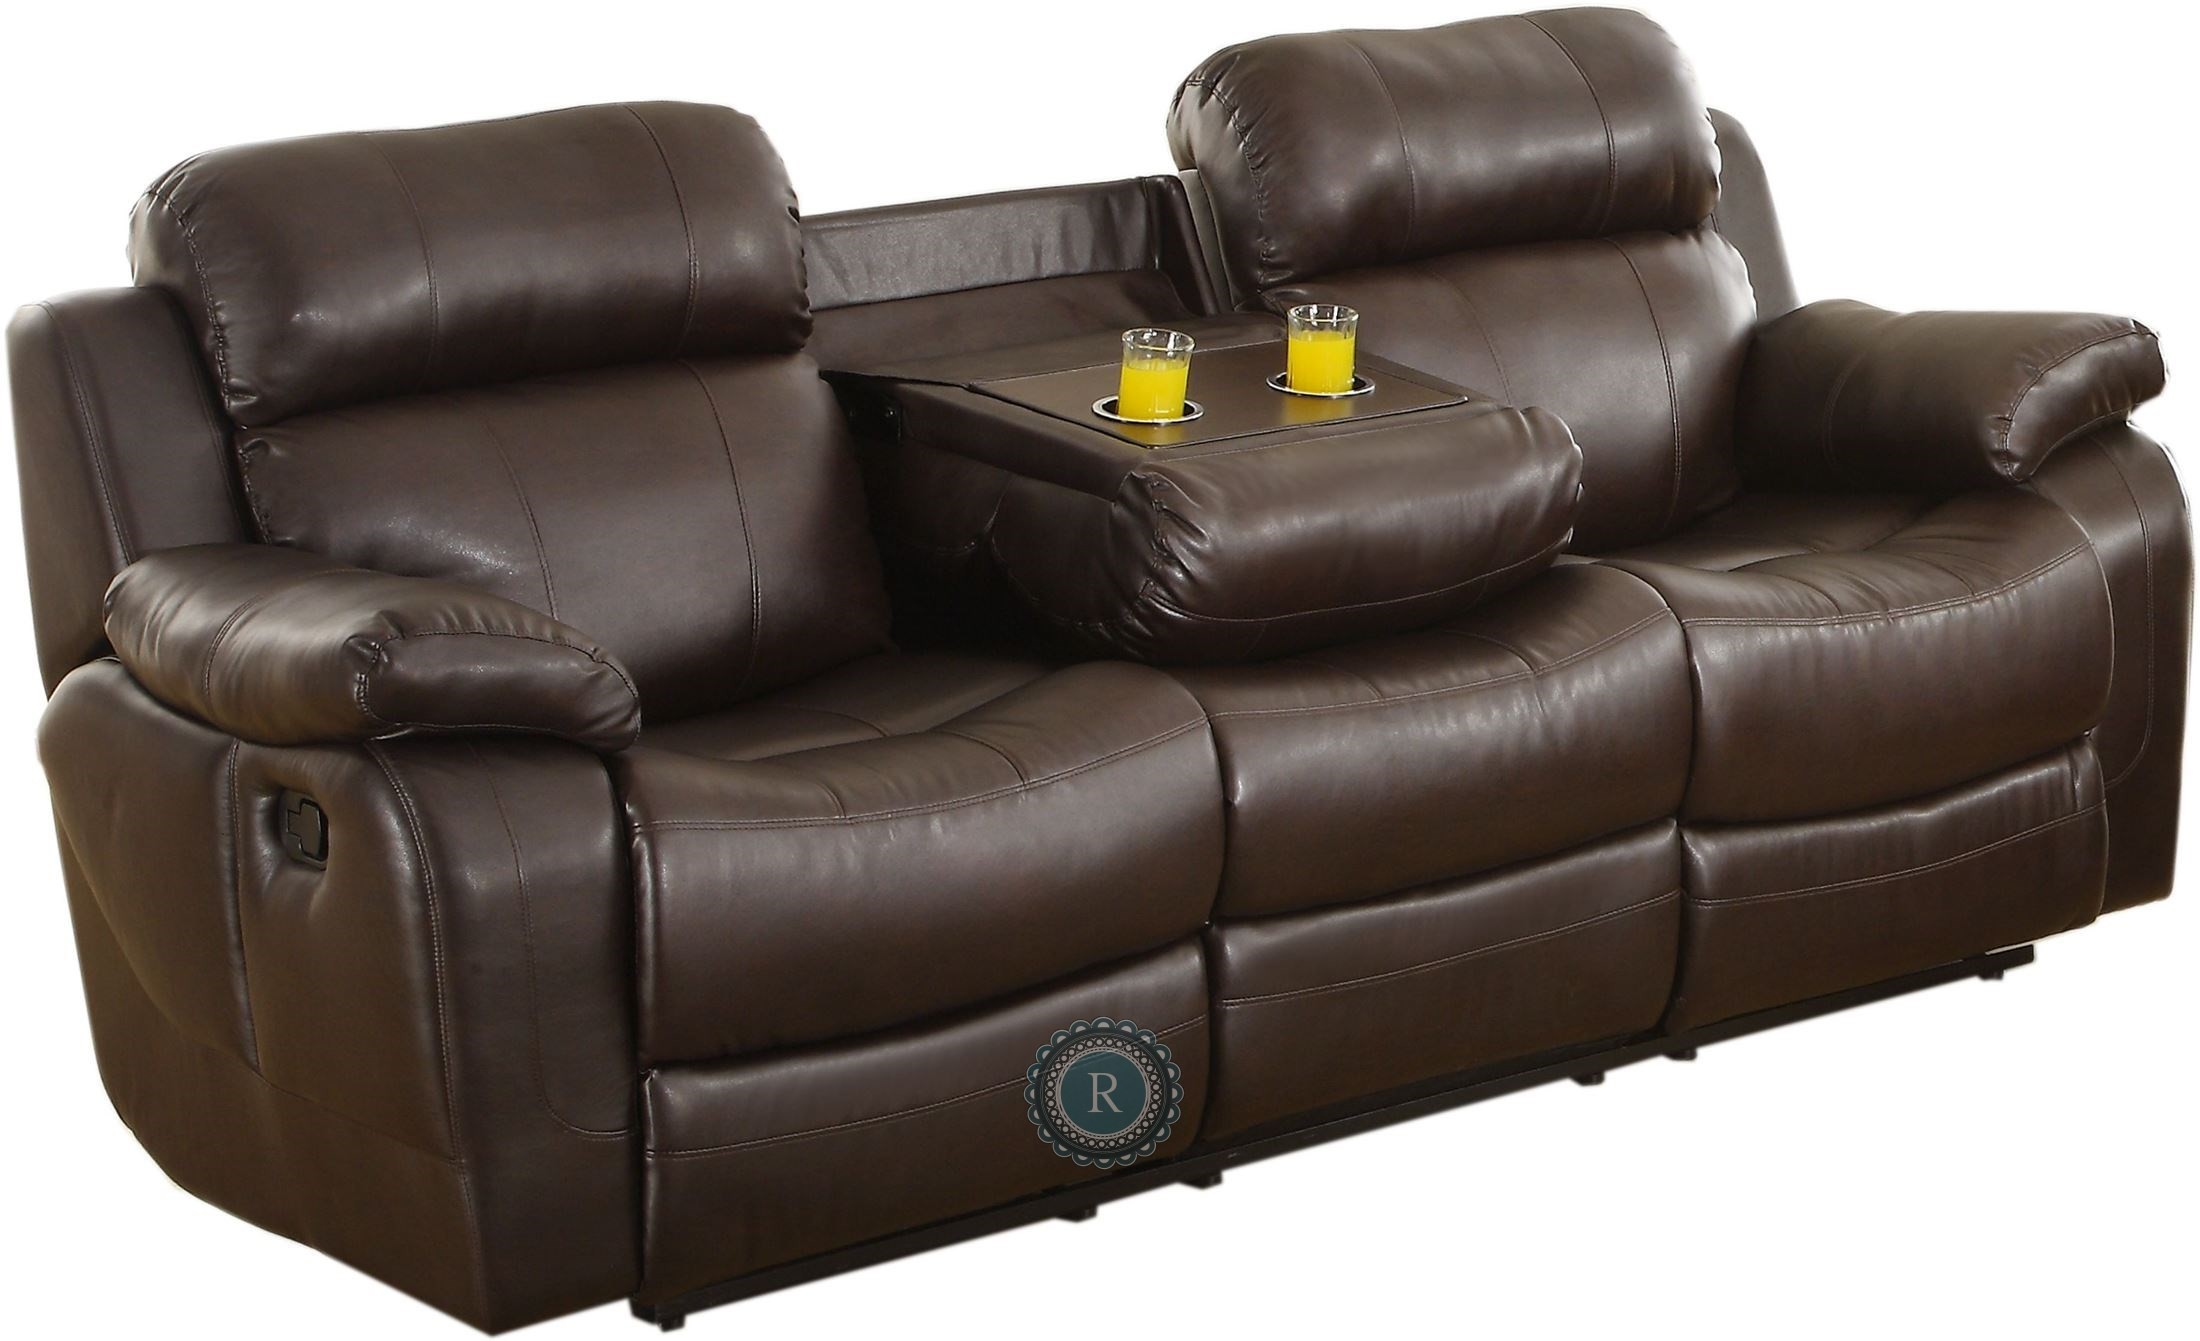 Marille Dark Brown Double Reclining Sofa With Center Drop